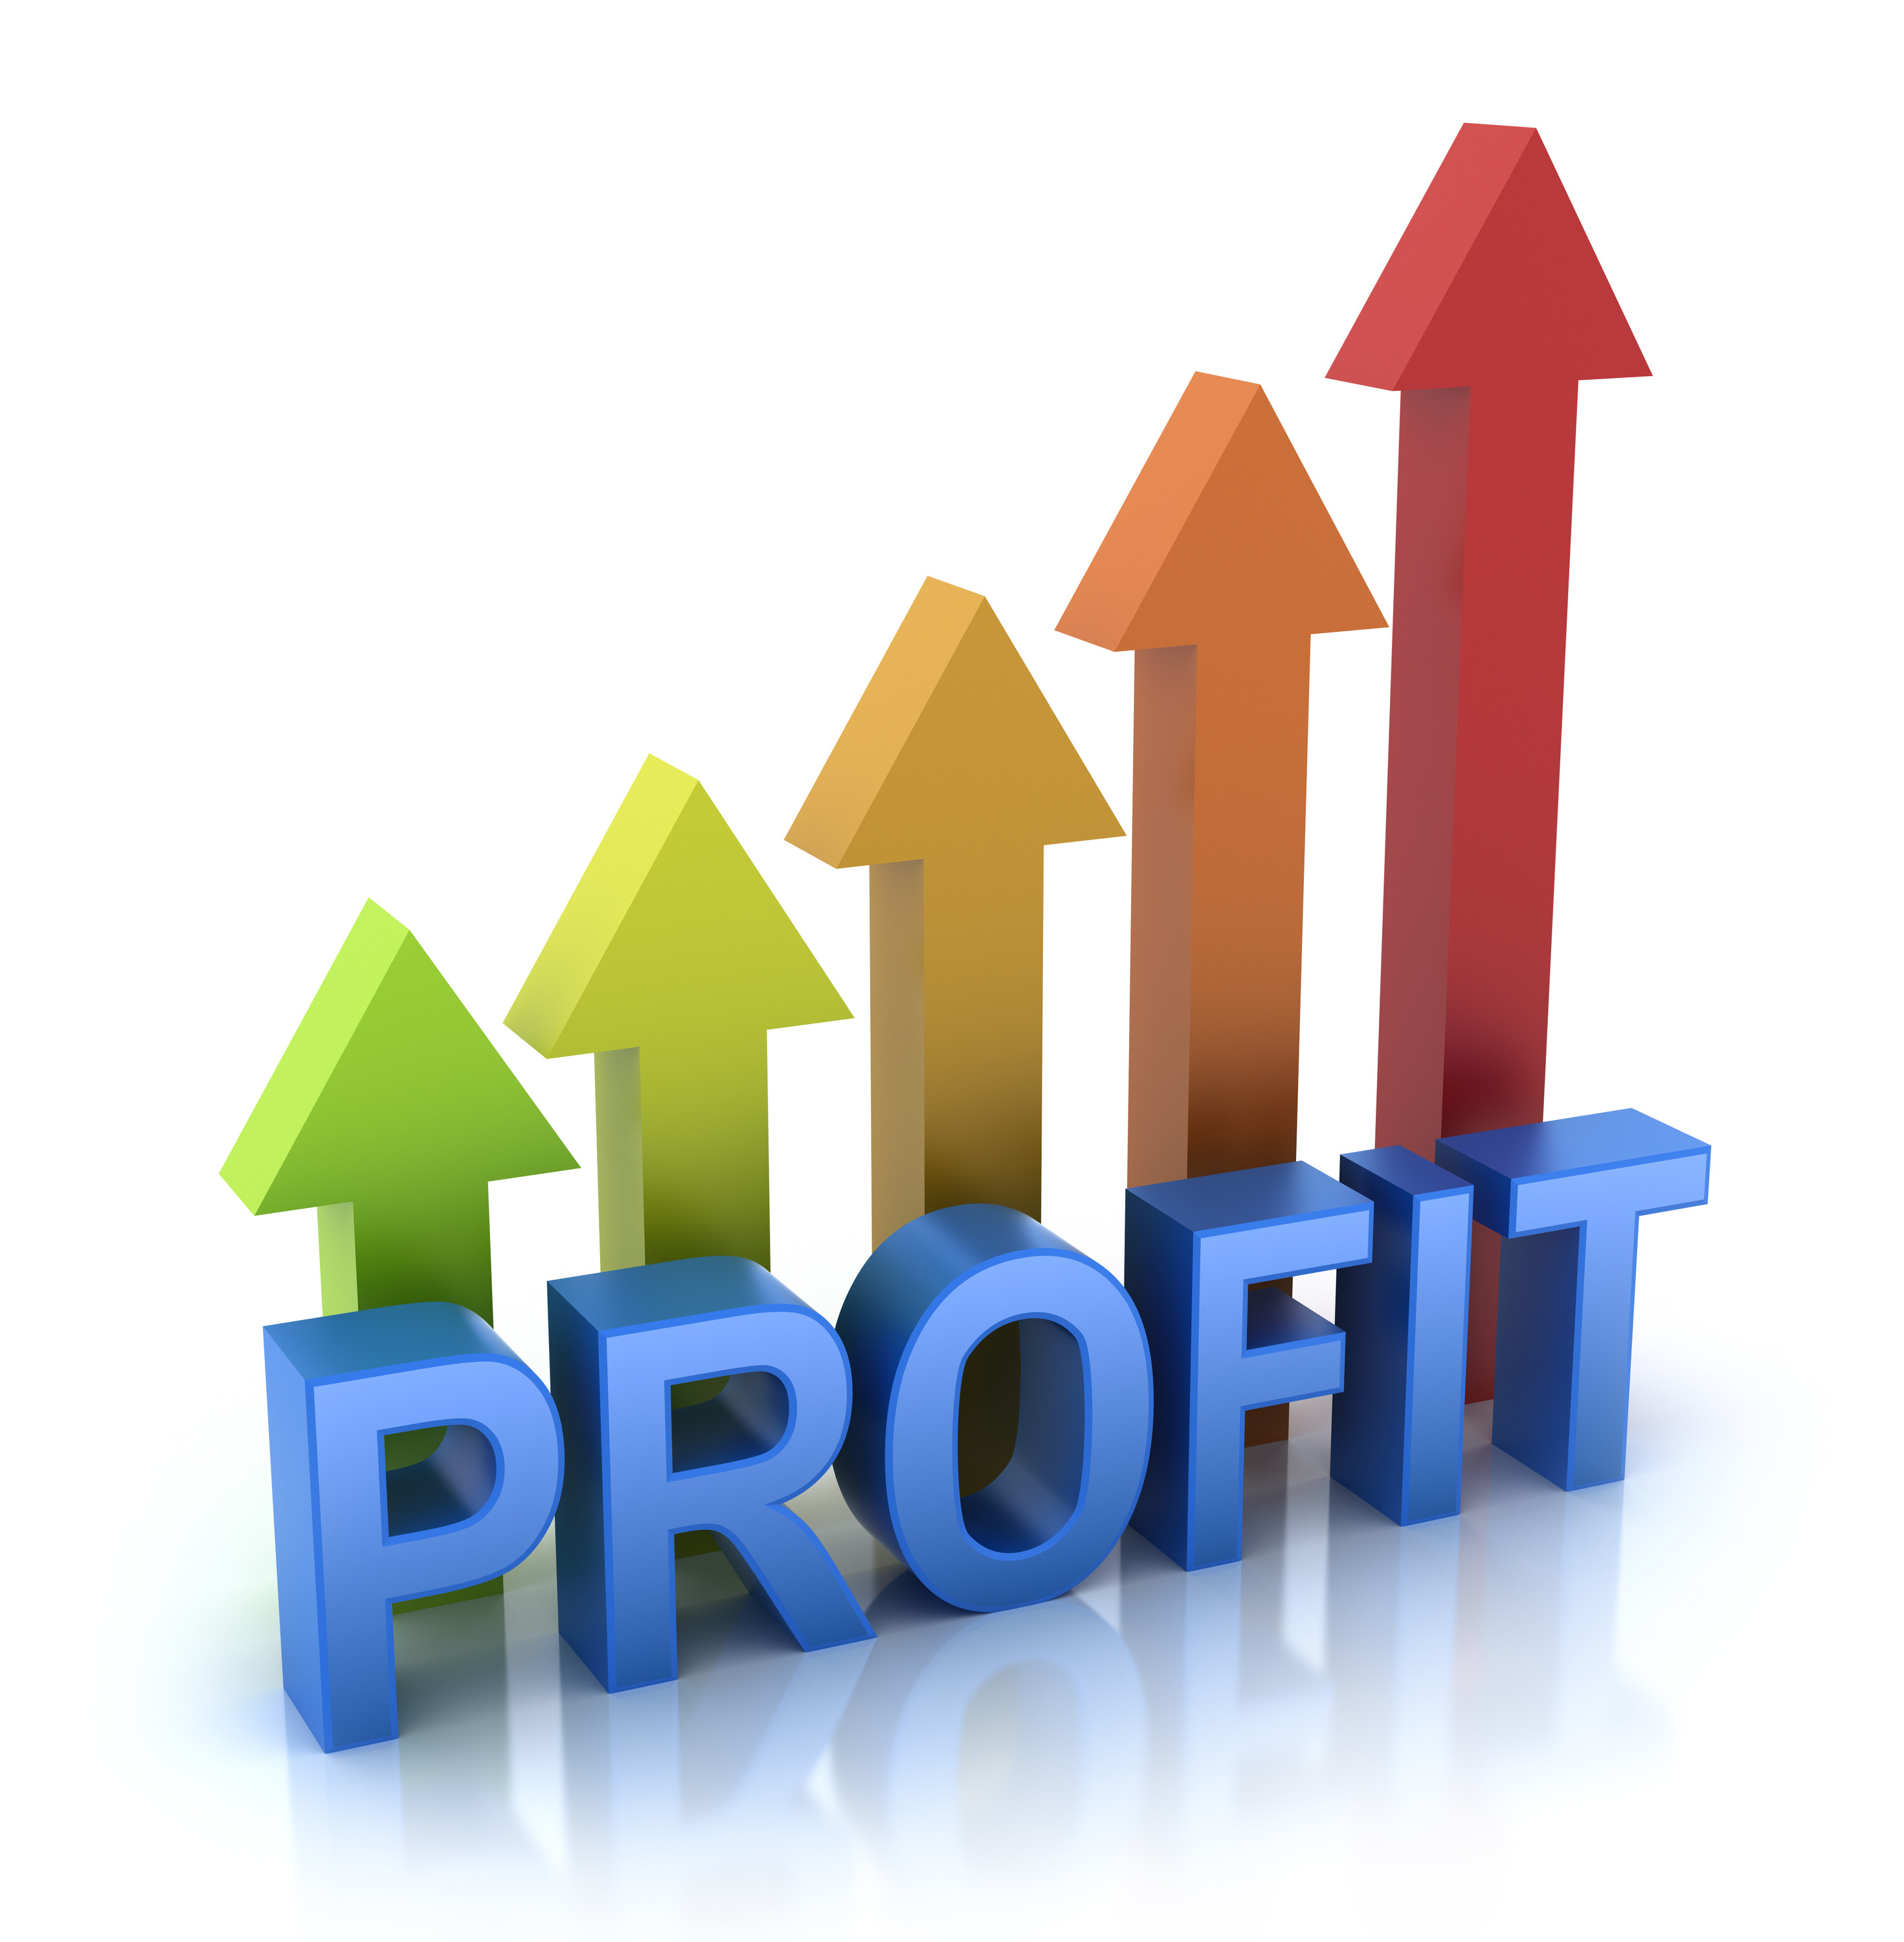 Want to maximize profit at the minimum cost? Read on!